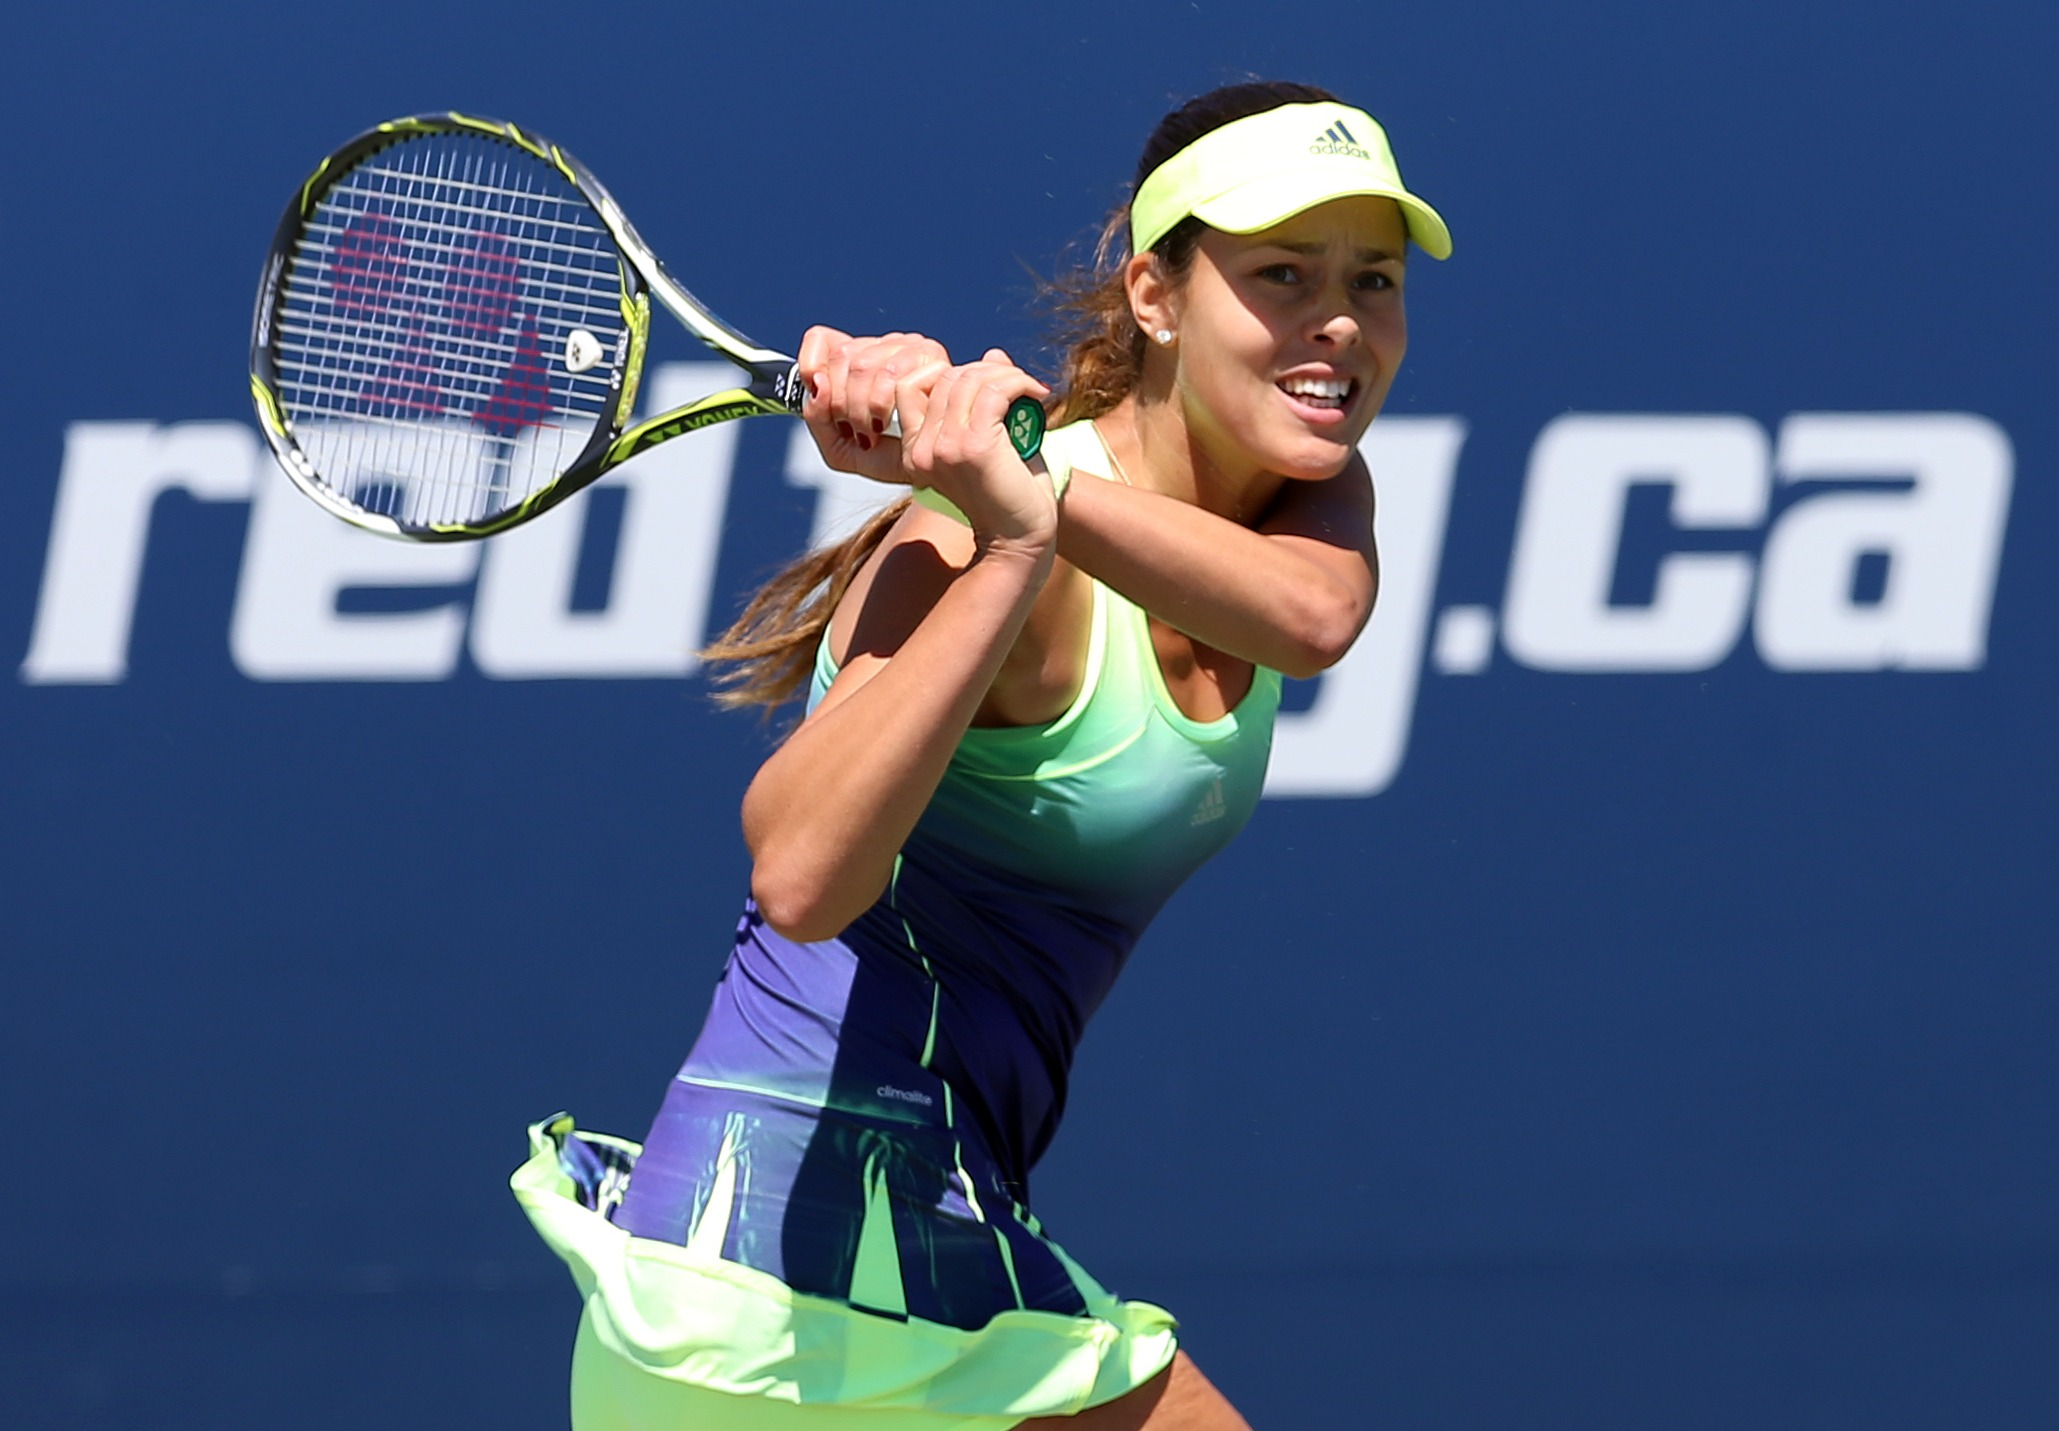 Rogers Cup Toronto - Day 3